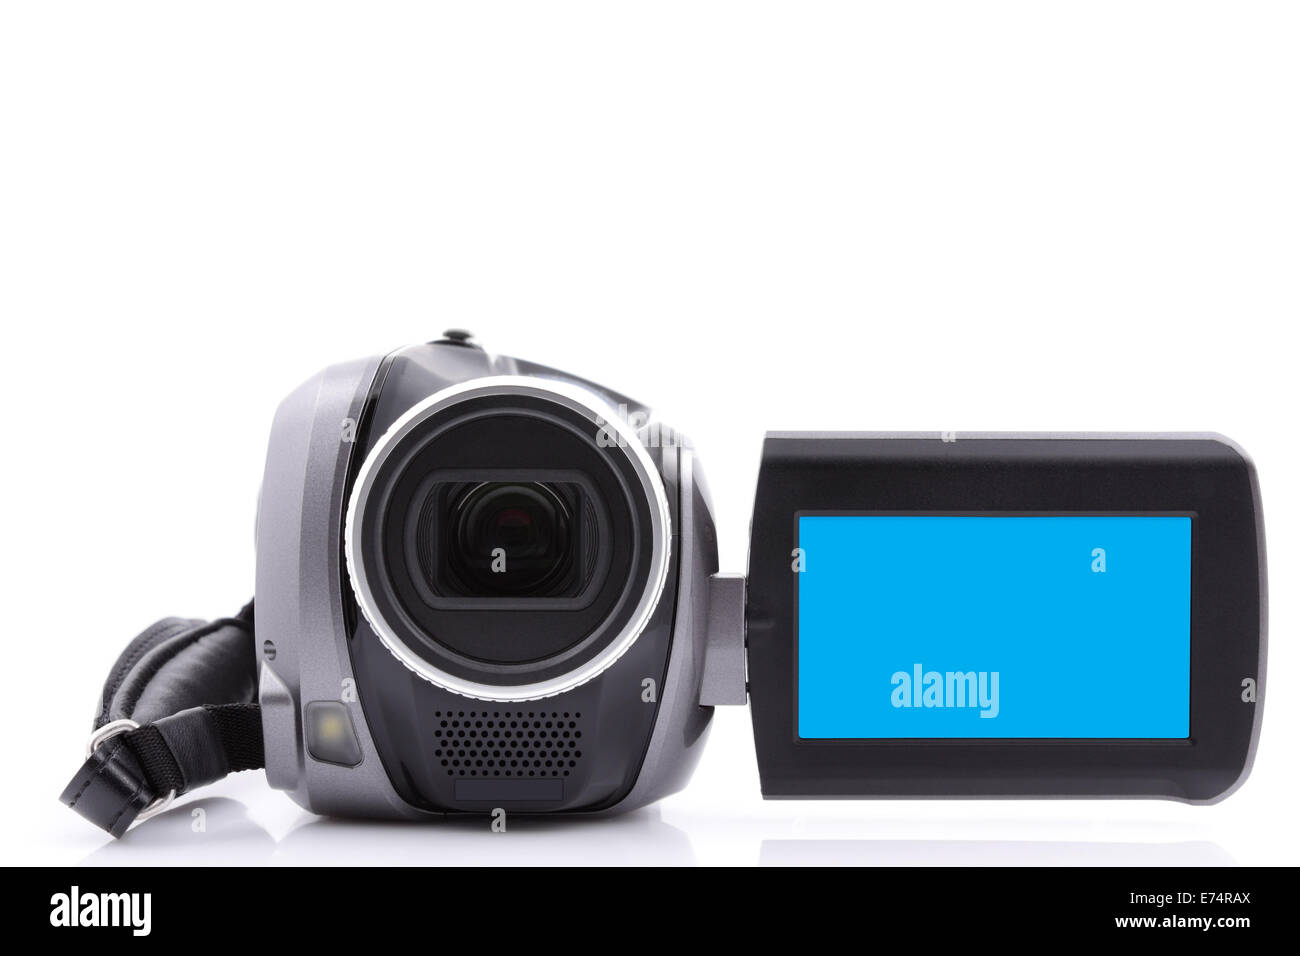 Digital video camera with empty display - over white background - Stock Image